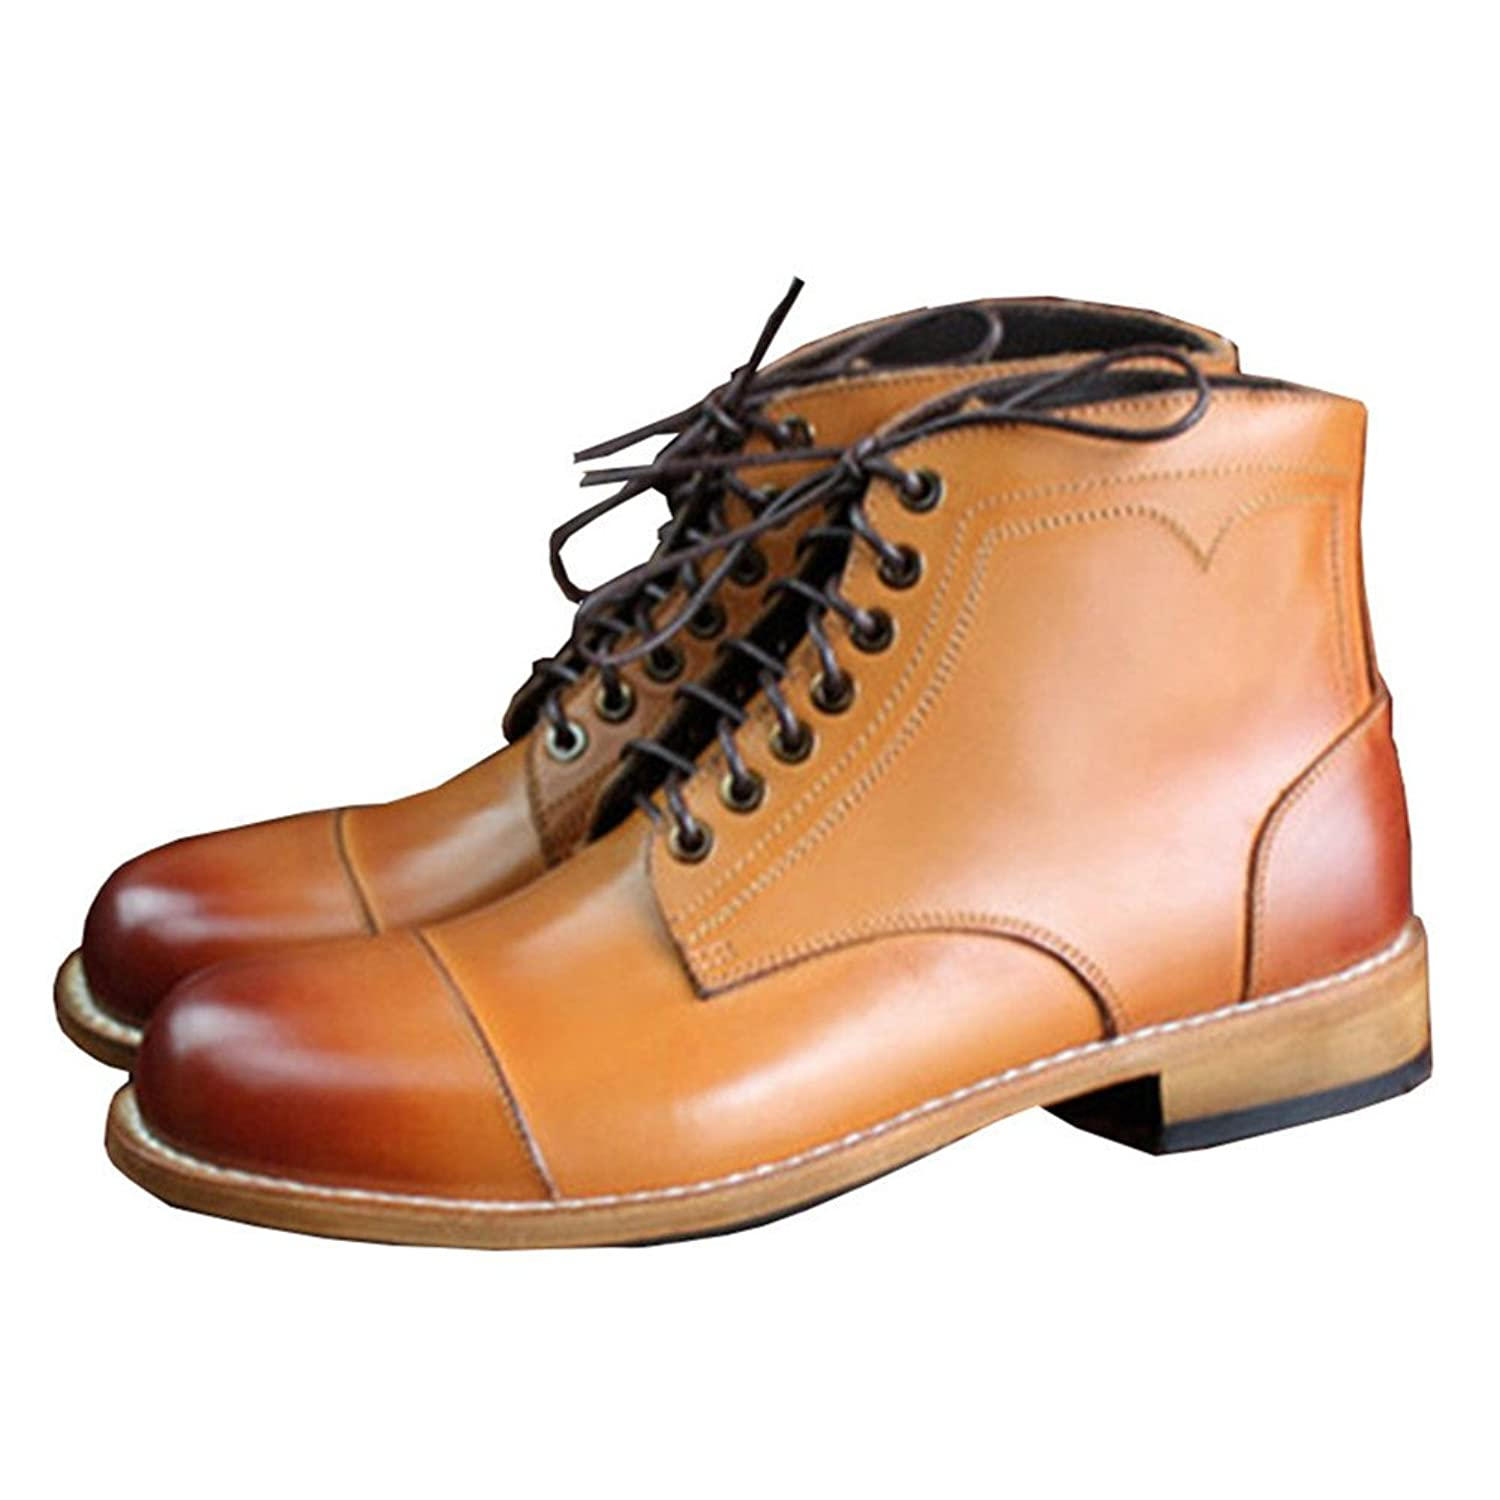 Goodyear Shoes Leather Oxfords Work Boots Waterproof